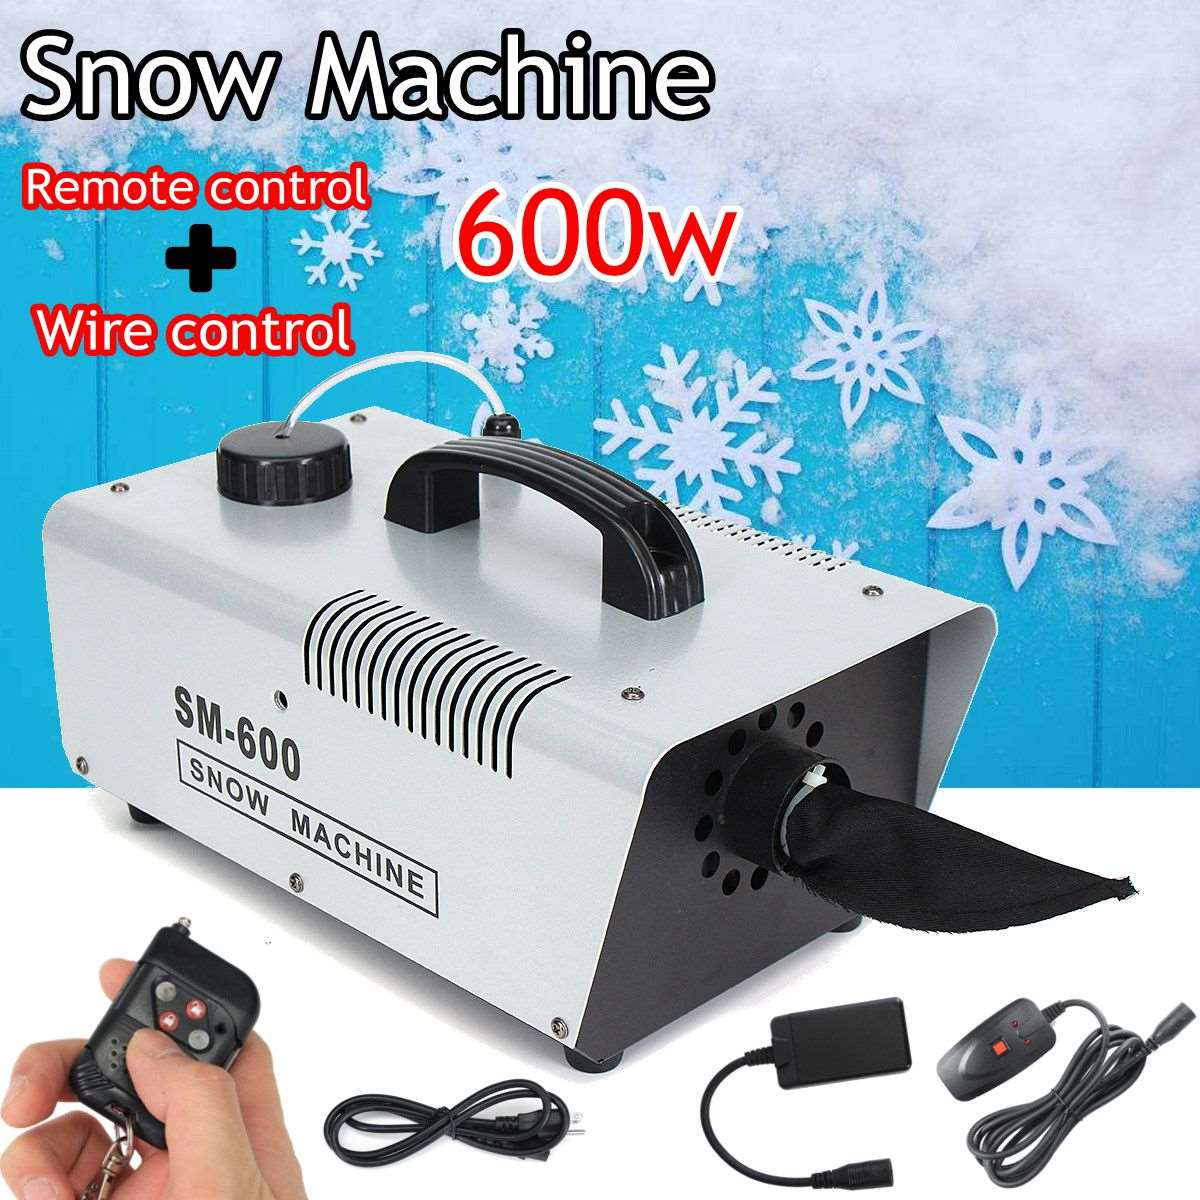 110V/220V 600W Mini Flurry Snow Machine Stage Effect + Wired Remote for Holiday Stage Snowmaker Spray Snow Soap Foam Machine full hd 1080p micro hdmi male to male connection cable black 100cm